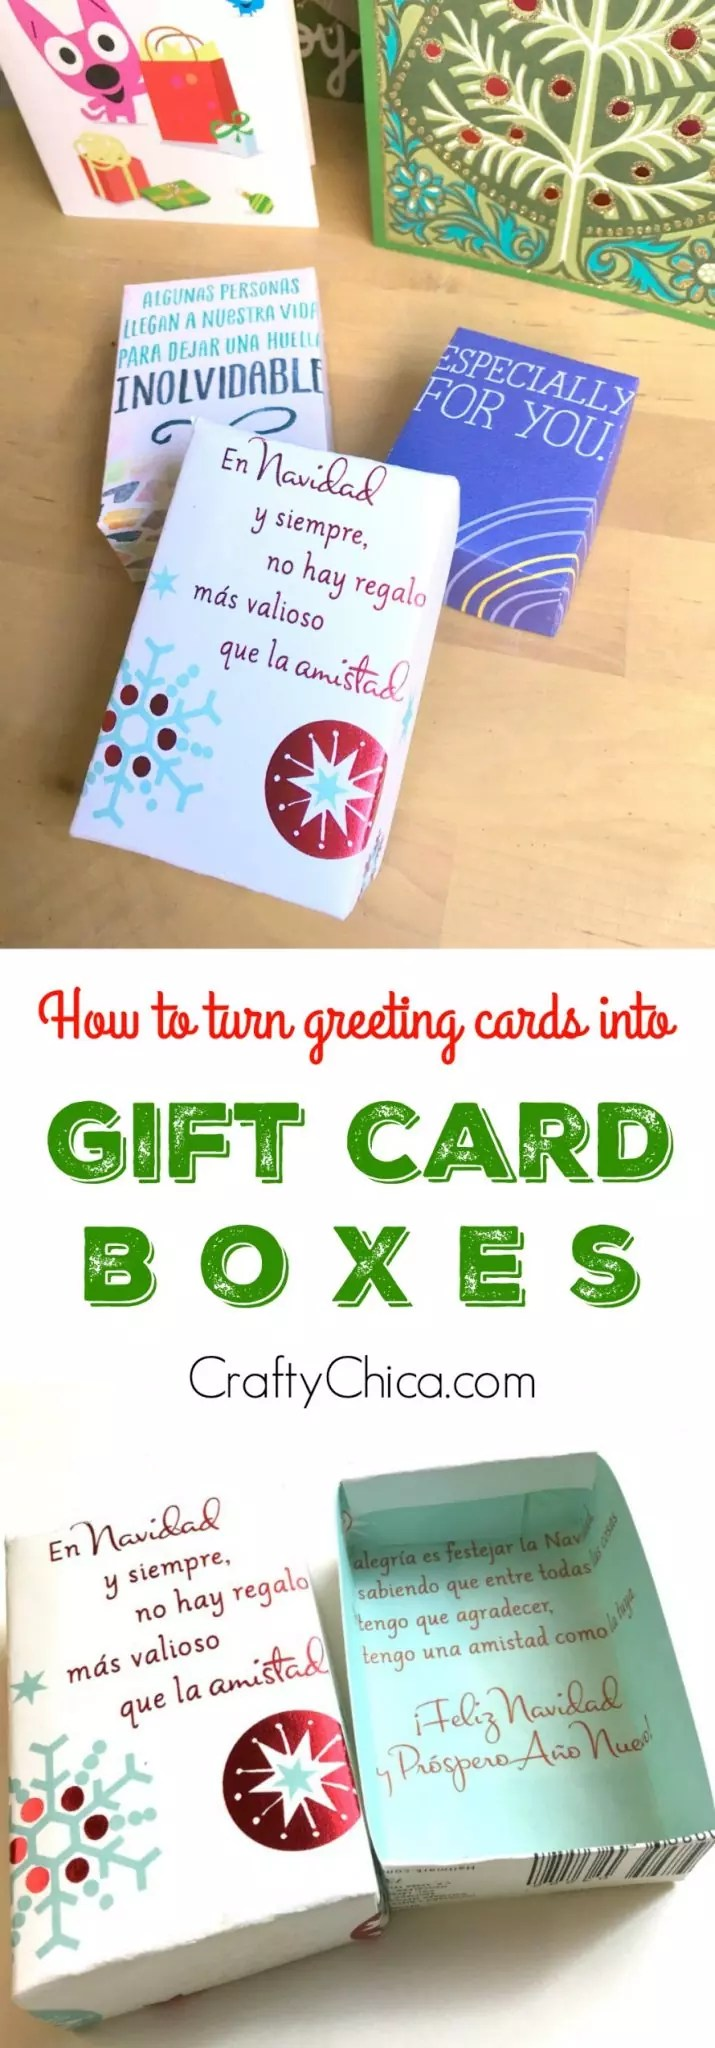 Turn greeting cards into gift boxes